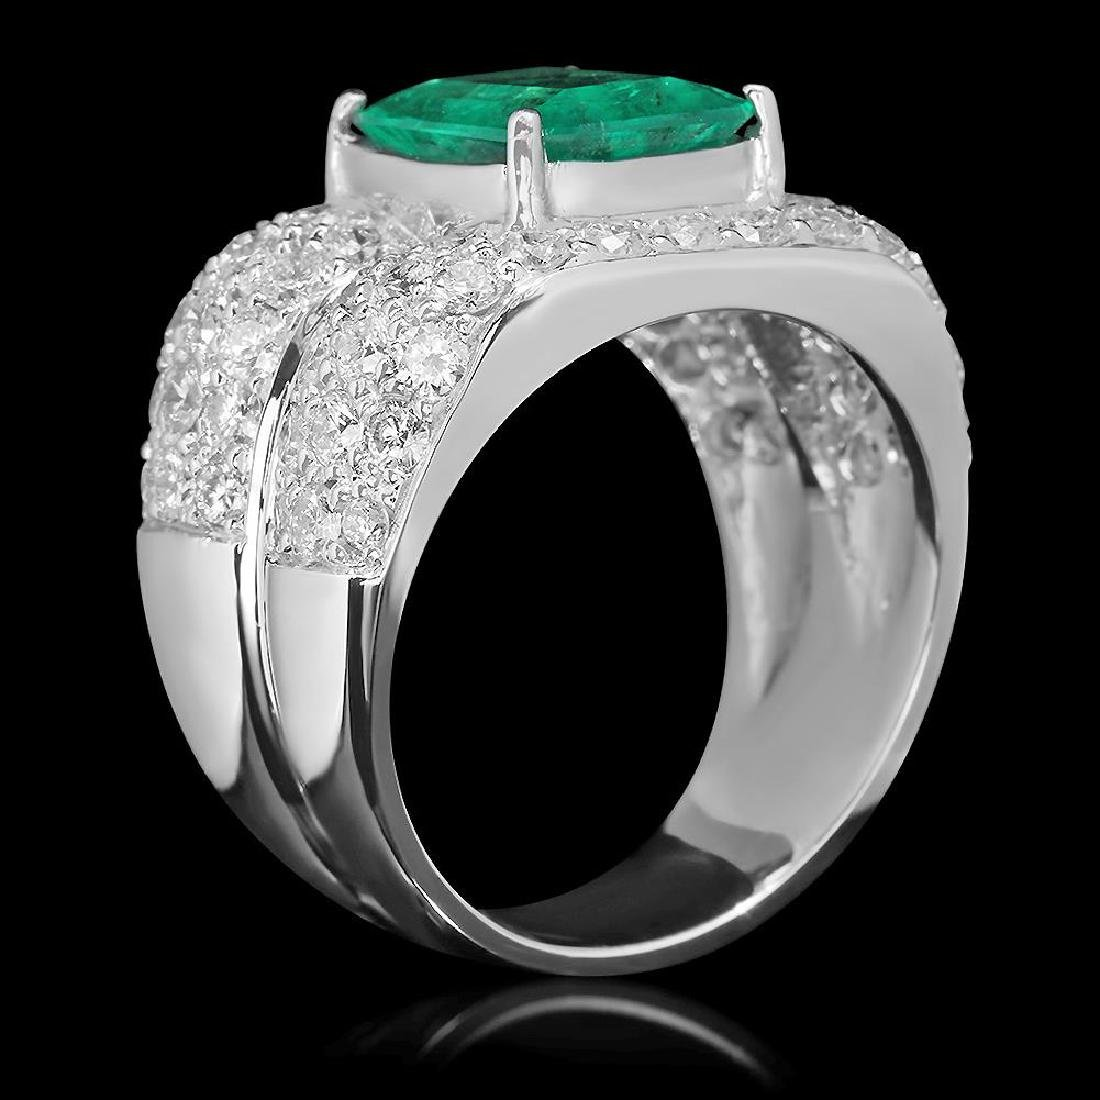 14K Gold 3.45 Emerald 3.68 Diamond Ring - 2